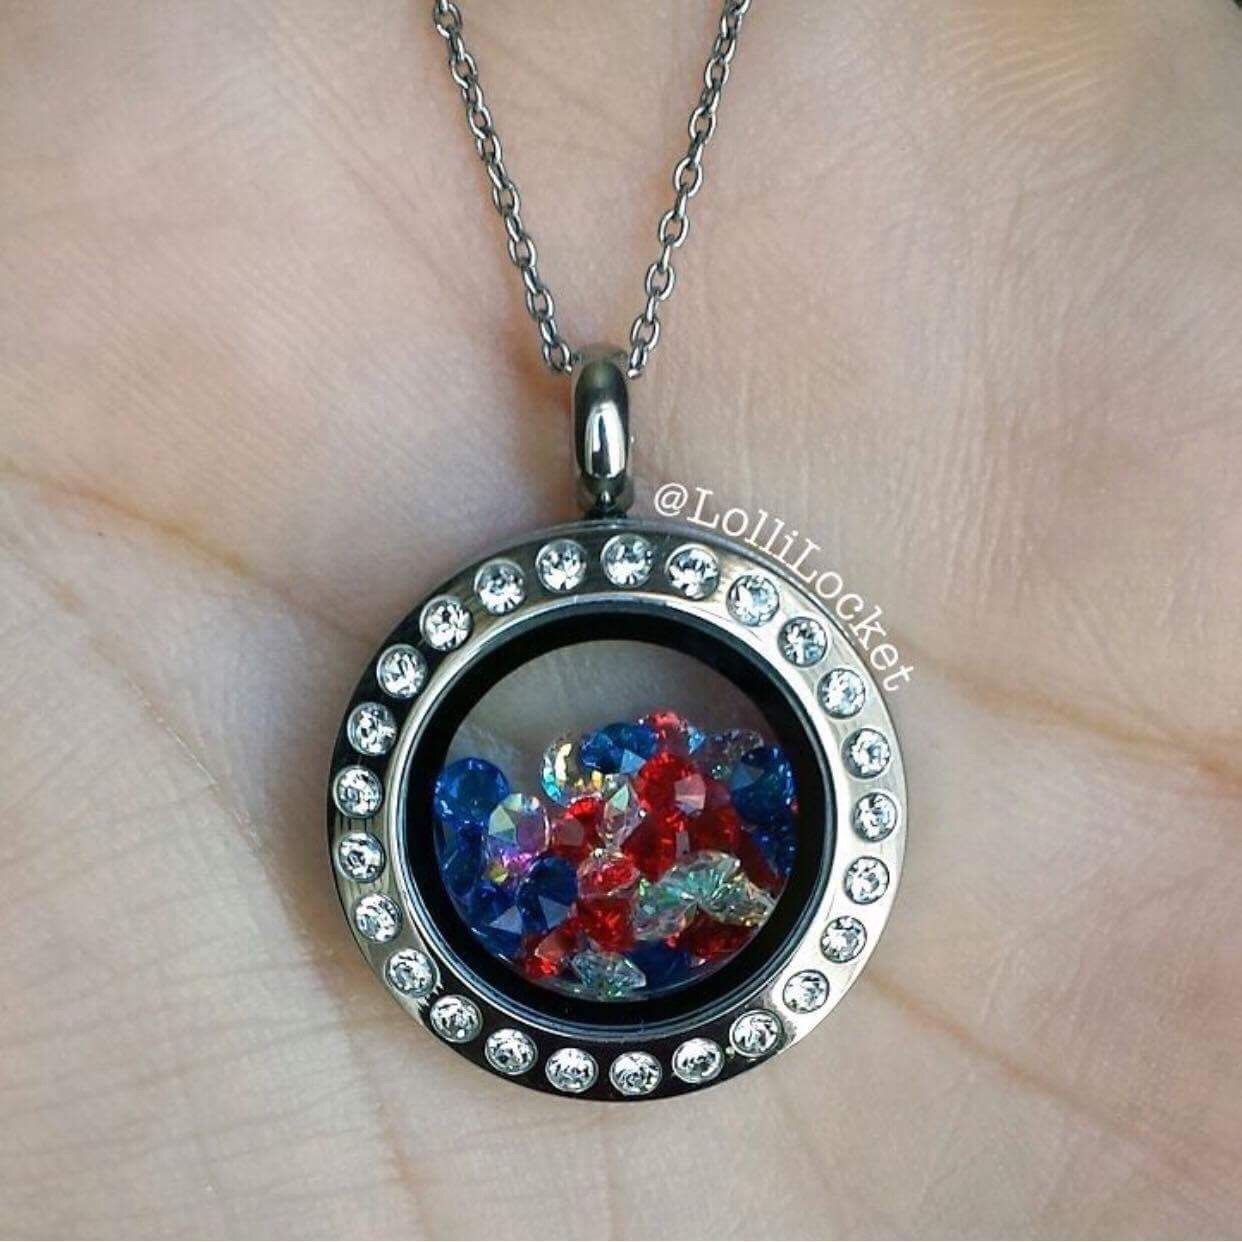 Origami owl i love mini lockets they are so sweet www origami owl i love mini lockets they are so sweet charmingsusie jeuxipadfo Image collections